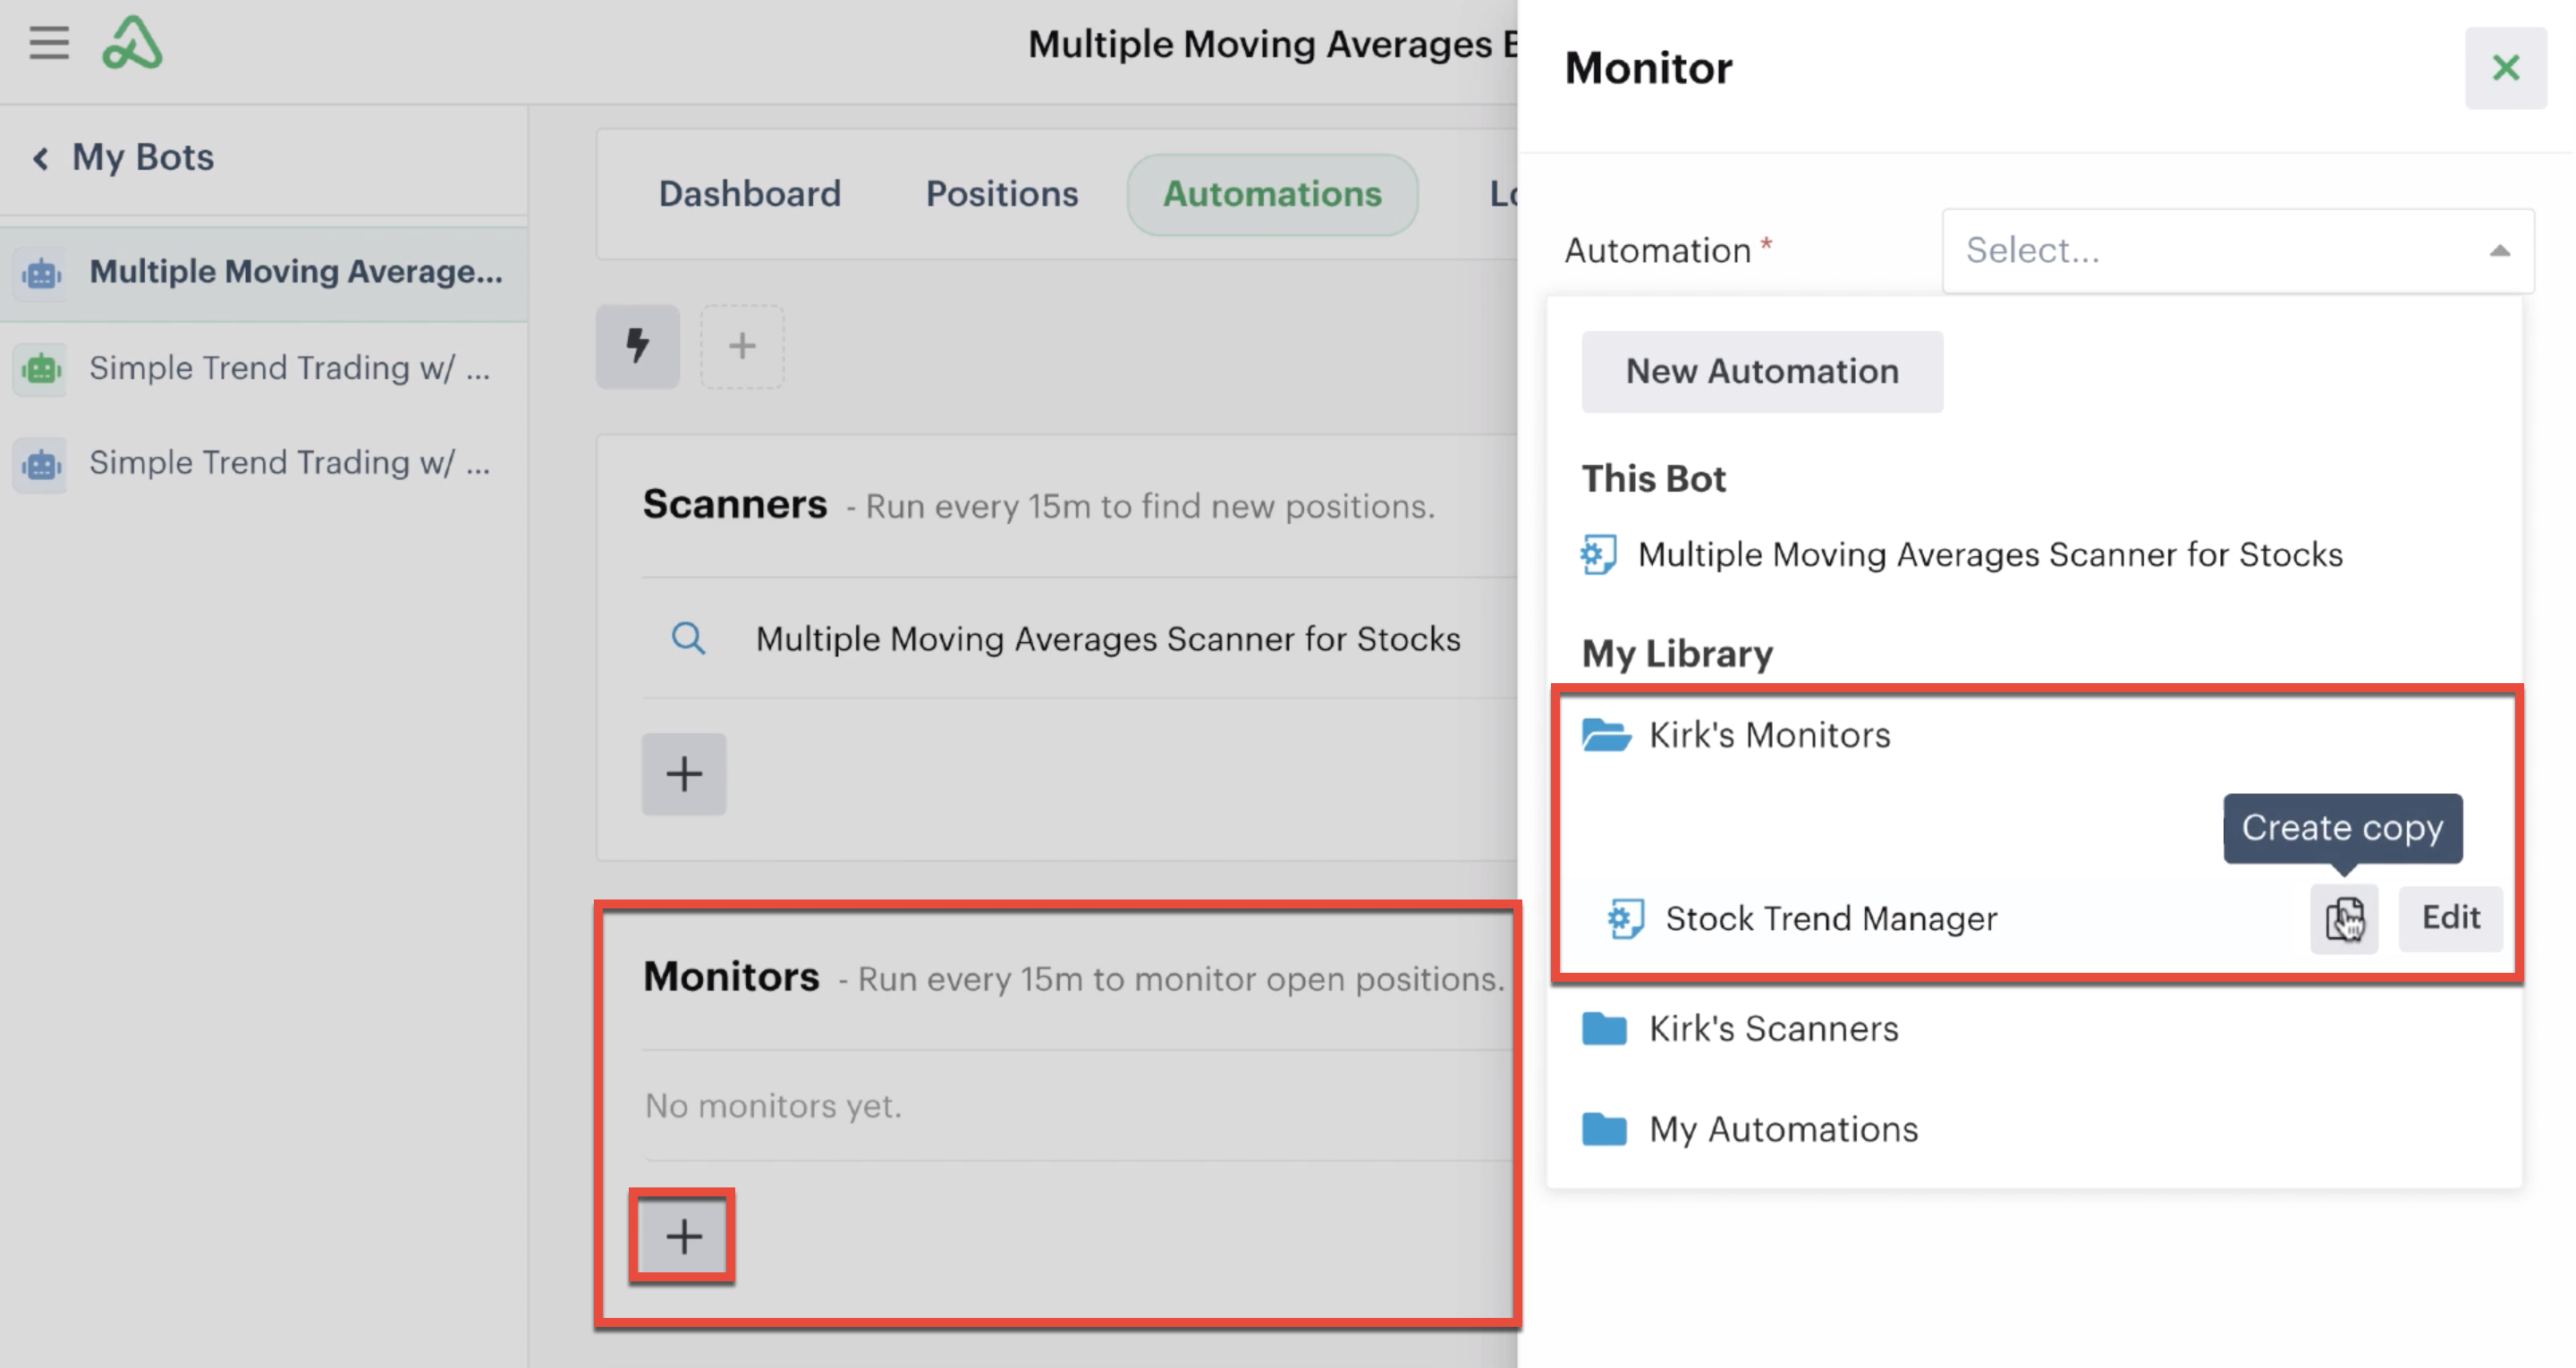 Creating a monitor automation copy